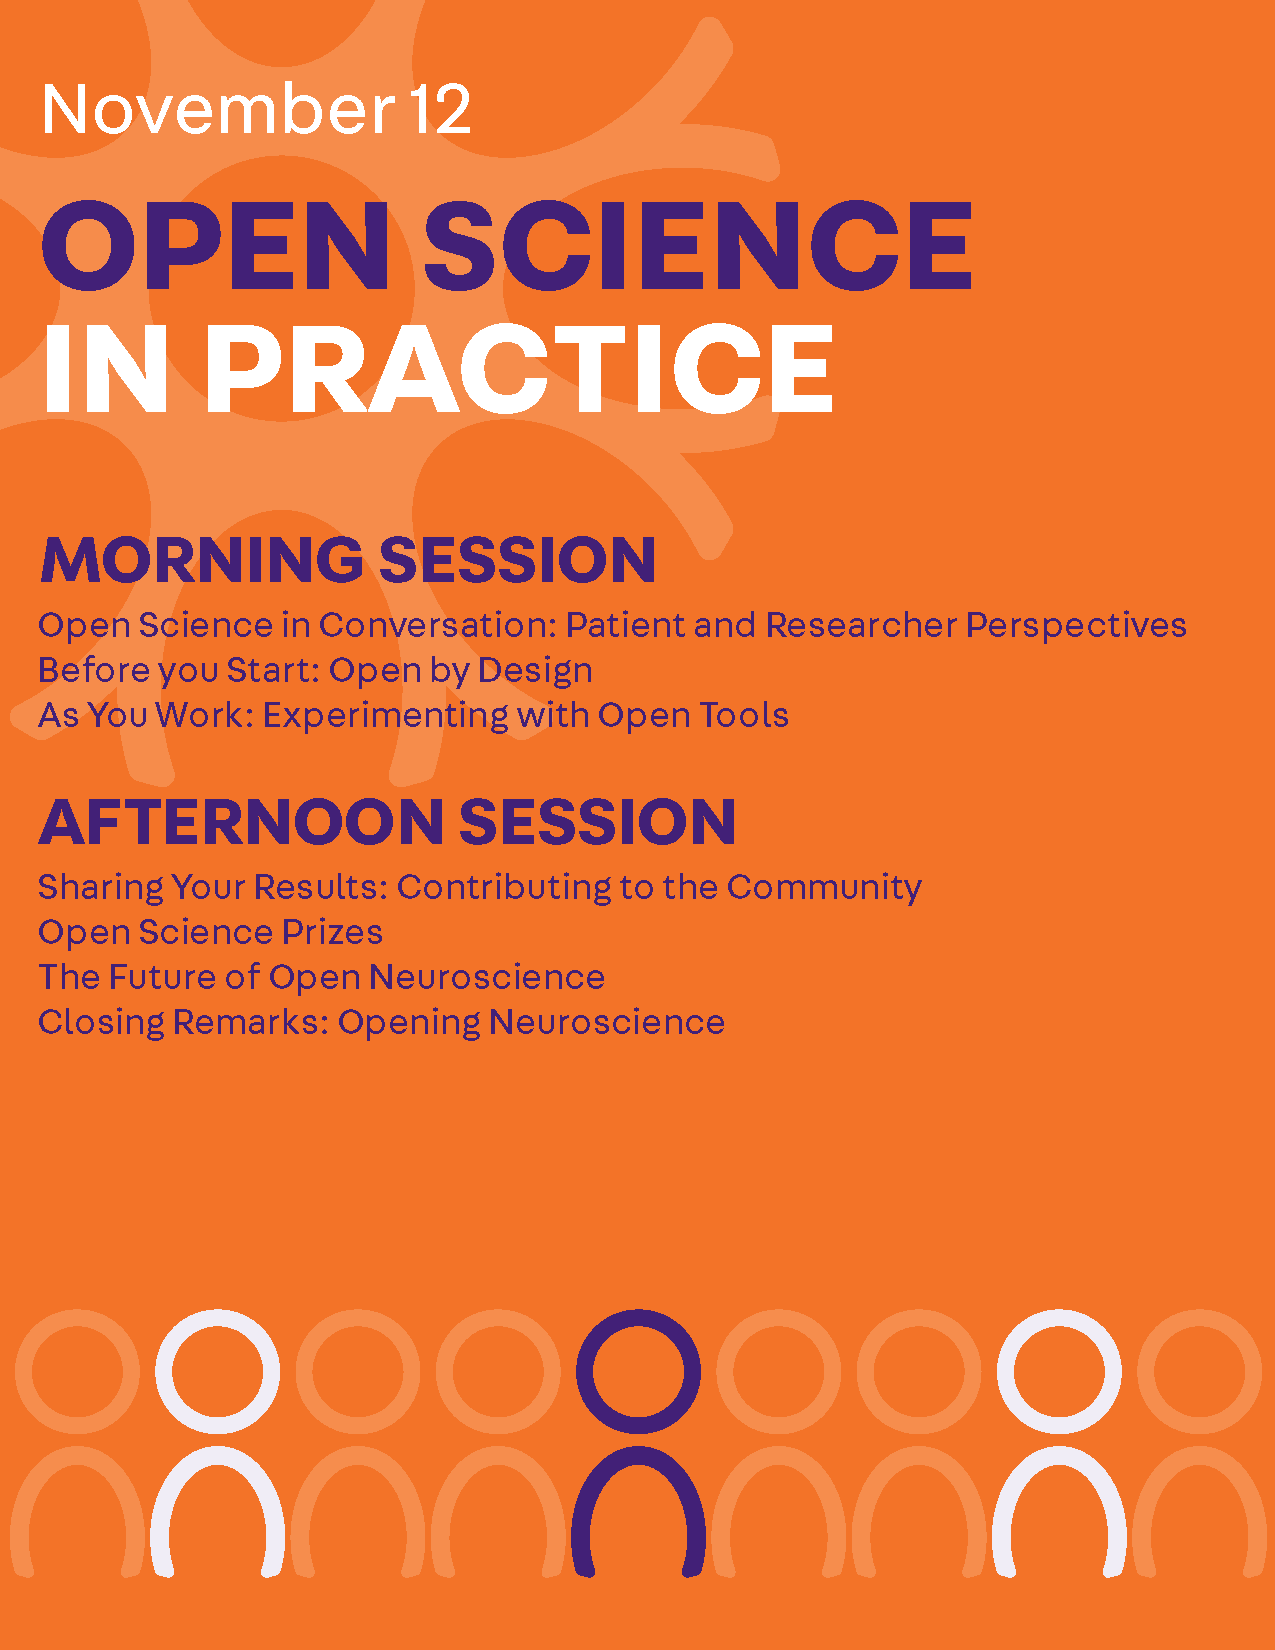 Open Science day 1 schedule